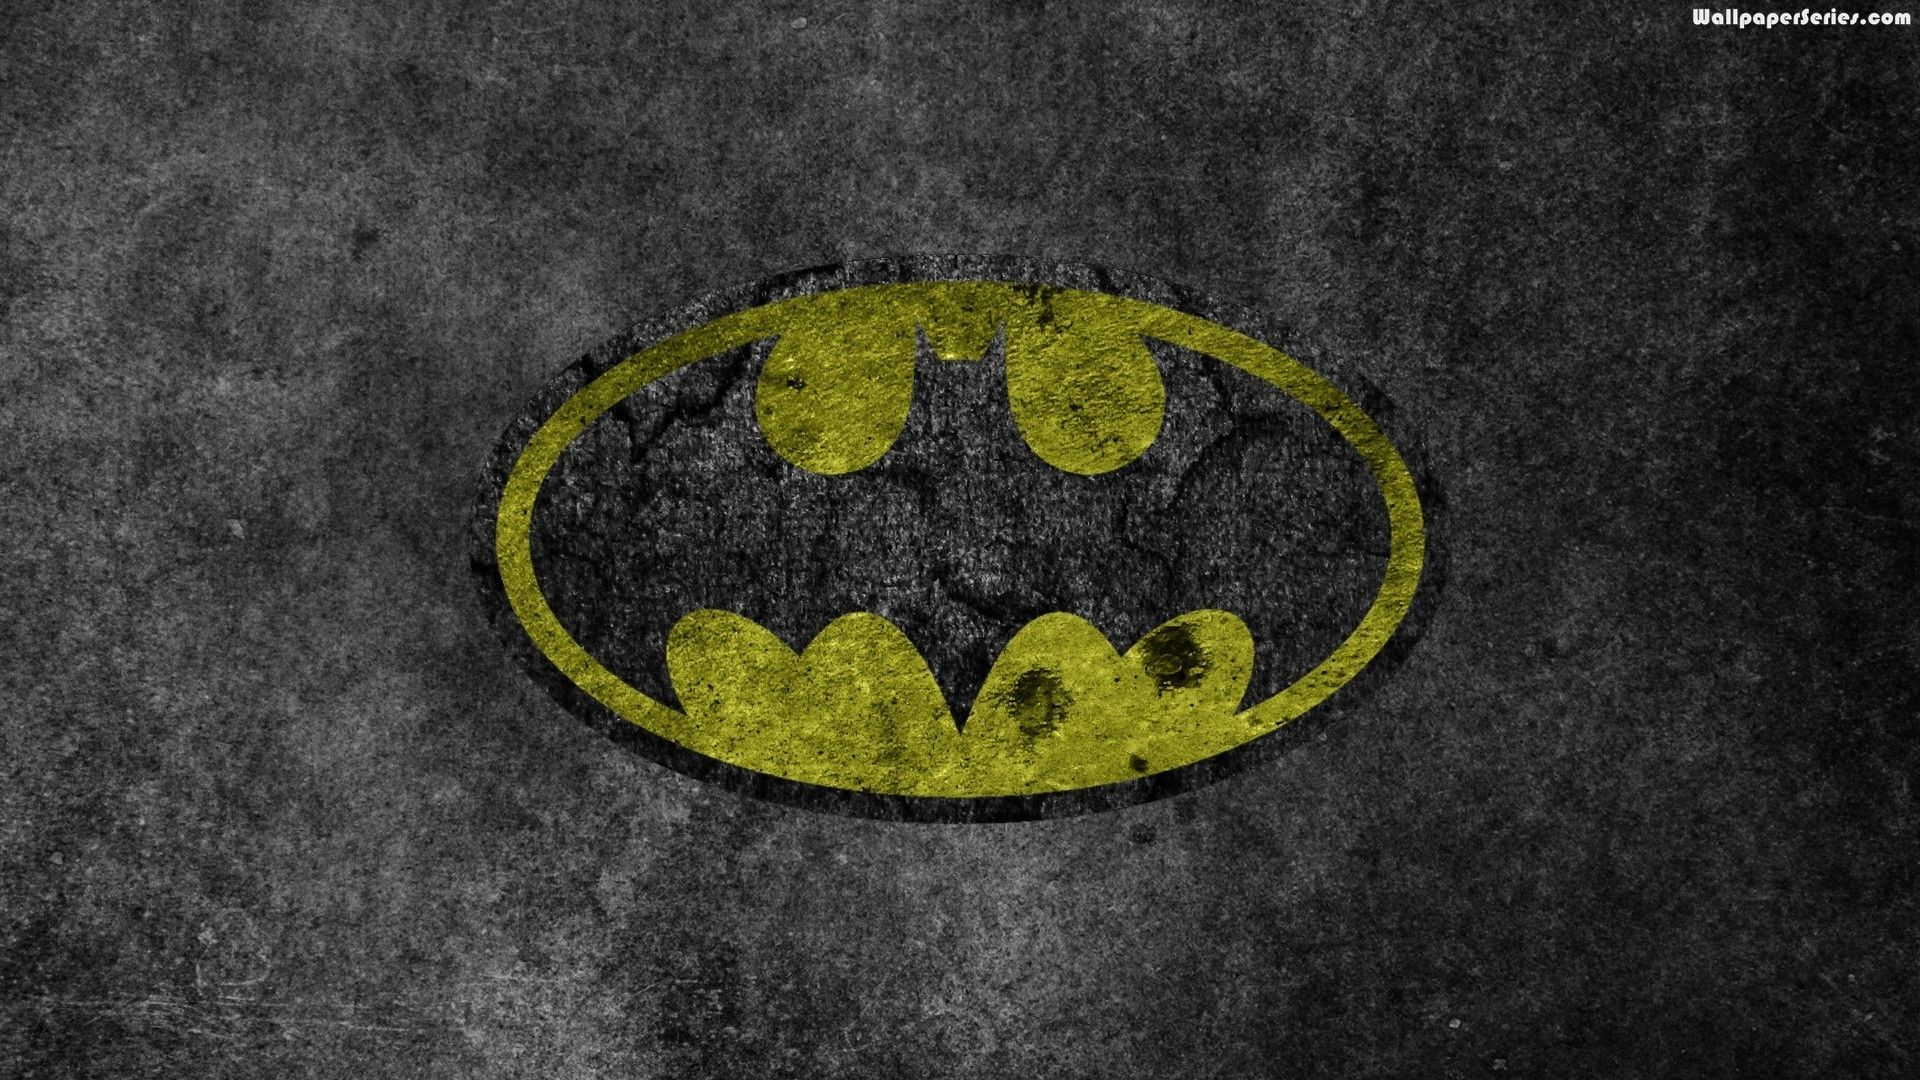 50 Batman Logo Wallpapers For Free Download Hd 1080p Batman